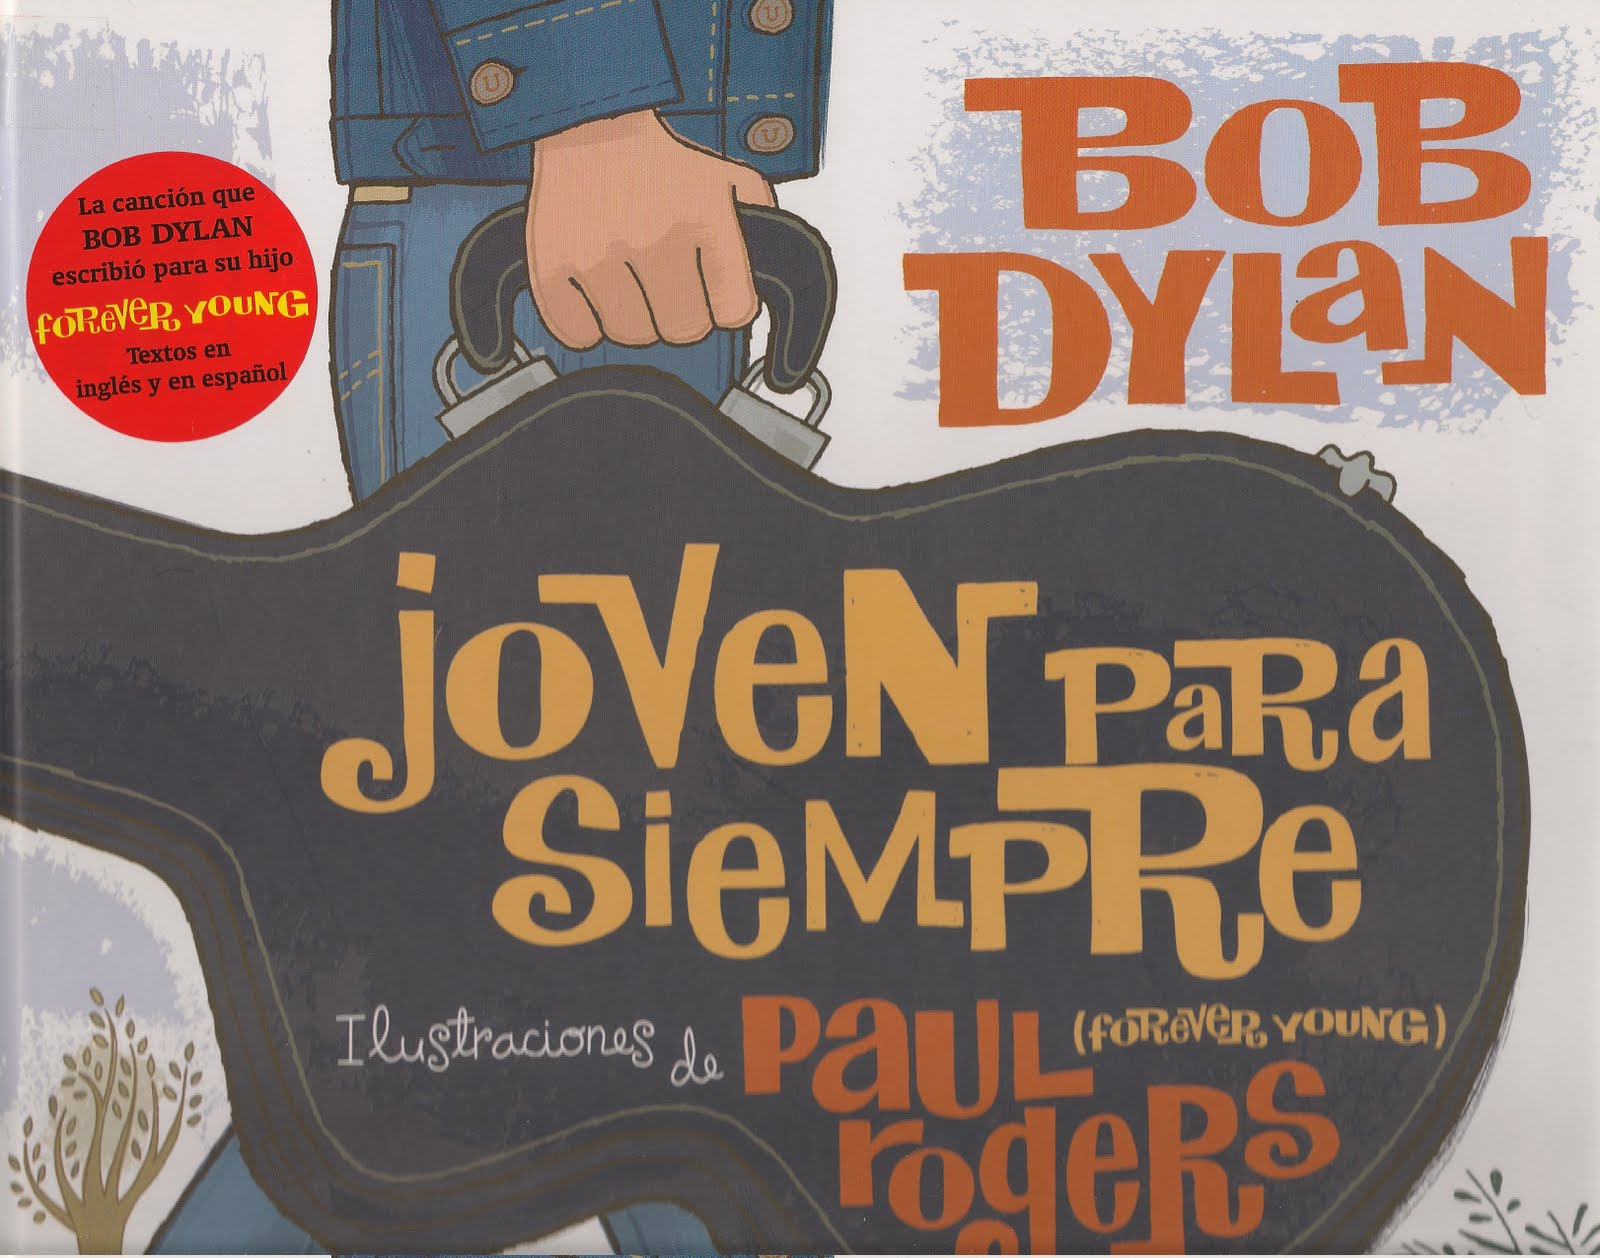 BOB DYLAN (el topic definitivo) - Página 2 SIEMPREJOVEN-1